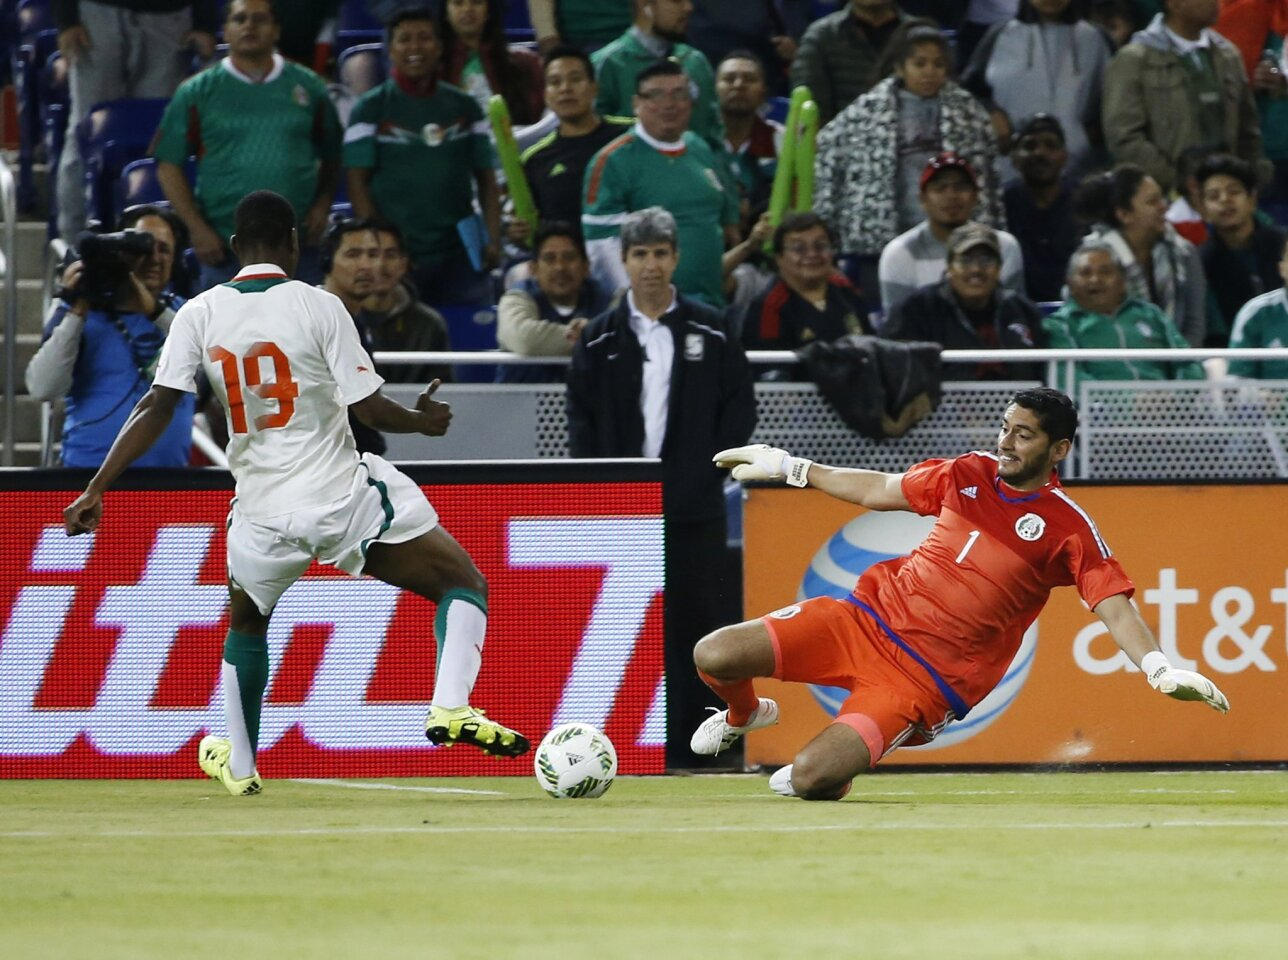 Mexico's goalkeeper Jesus Corona (1) makes a save against Senegal's Assane Mbodj during the first half of a soccer match at Marlins Park, Wednesday, Feb. 10, 2016, in Miami. (AP Photo/Wilfredo Lee)